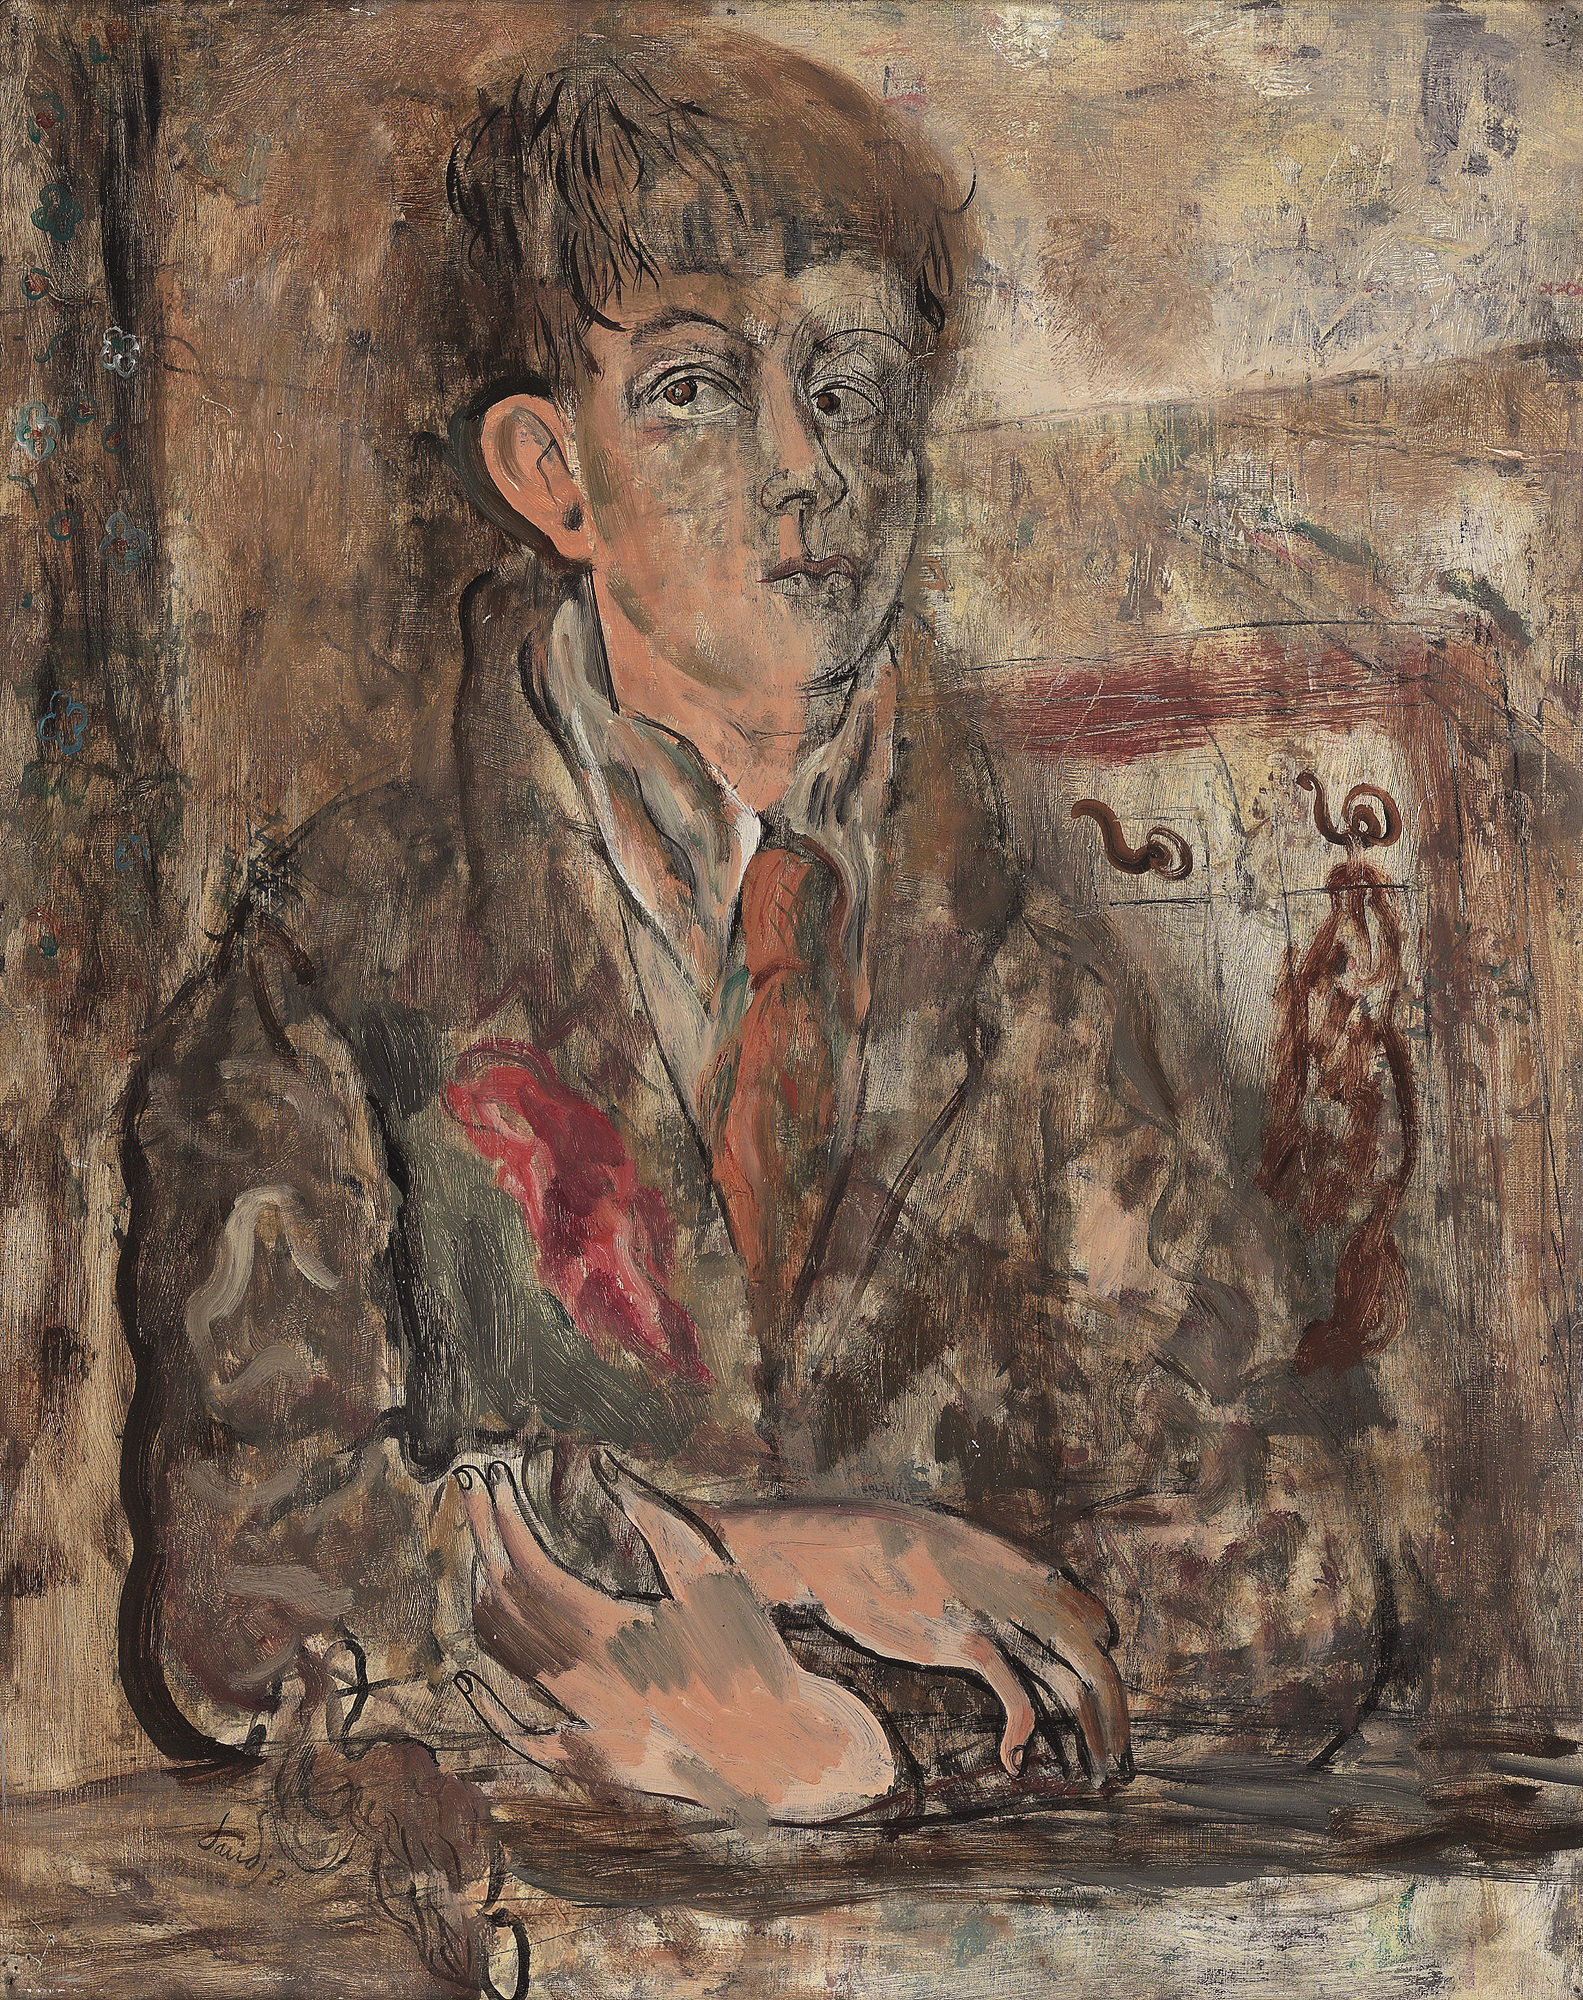 David Jones,  Human Being  (self-portrait), 1931